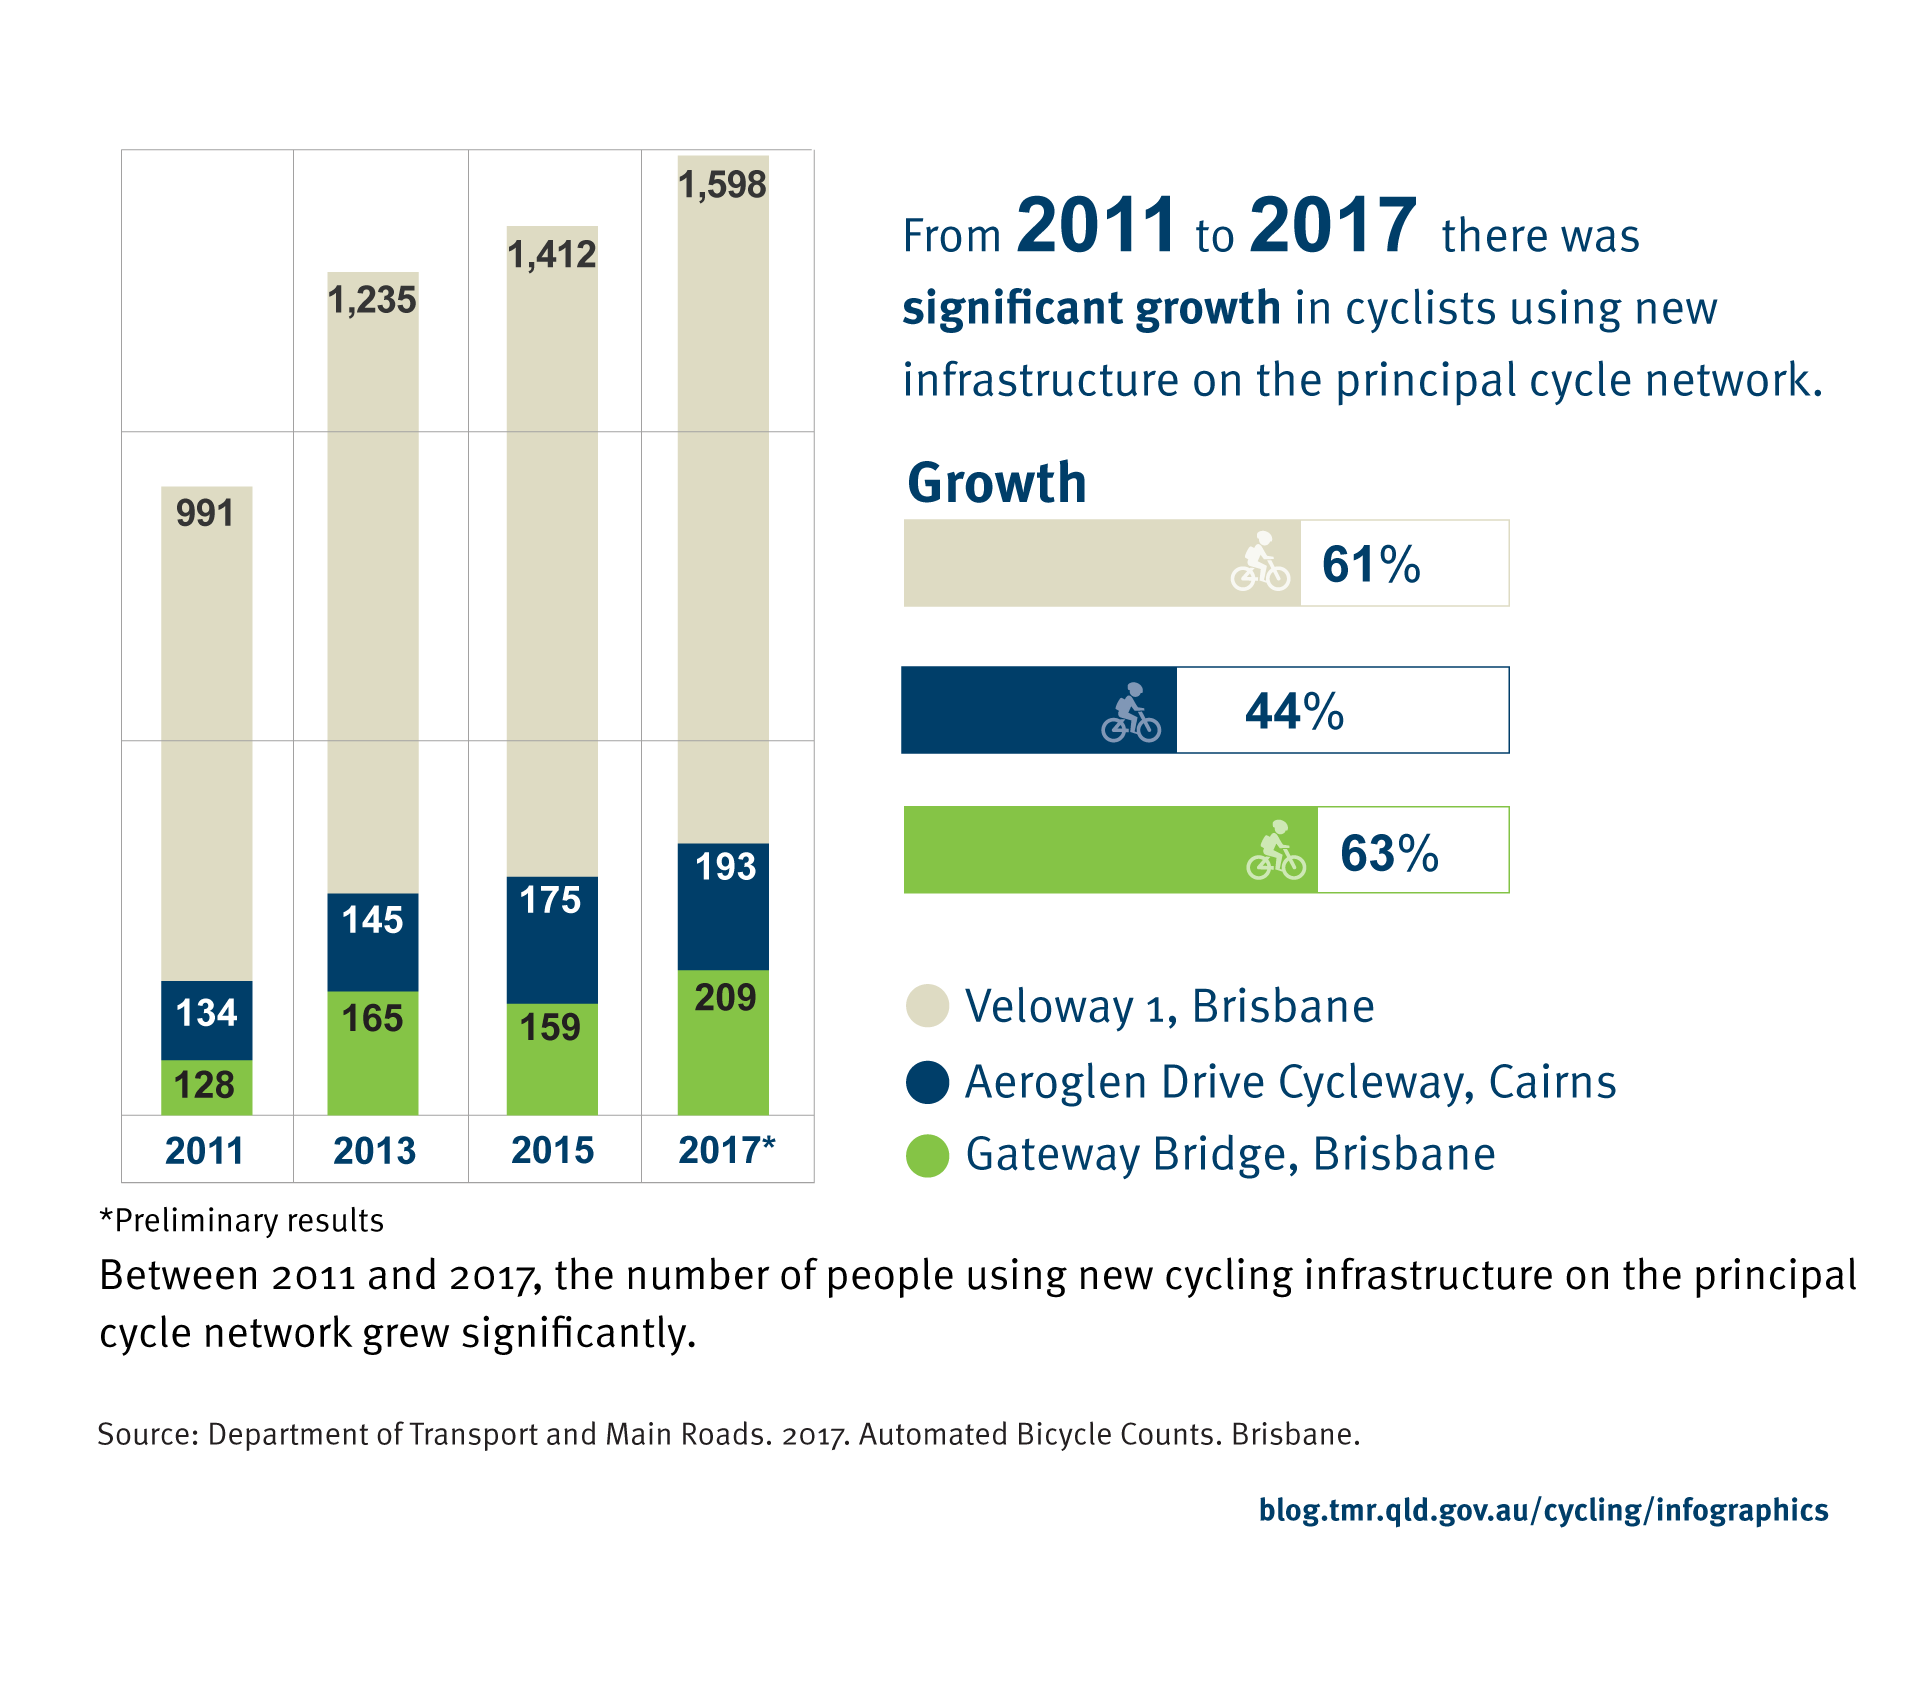 Between 2011 and 2017, the number of people using new cycling infrastructure on the principal cycle network grew significantly.  In 2011, average daily counts were: 991 for the Veloway 1 in Brisbane, 134 for the Aeroglen Drive Cycleway in Cairnsand 128 for the the Gateway Bridge in Brisbane. In 2013, average daily counts were: 1,235 for Veloway 1 in Brisbane, 145 for the Aeroglen Drive Cycleway in Cairnsand 165 for the Gateway Bridge in Brisbane. In 2015, average daily counts were: 1,412 for Veloway 1 in Brisbane, 175 for Aeroglen Drive Cycleway in Cairns and 159 for the Gateway Bridge in Brisbane. In 2017, average daily counts were: 1,598 for Veloway 1 in Brisbane, 193 for Aeroglen Drive Cycleway in Cairns and 209 for the Gateway Bridge in Brisbane. This data shows that from 2011 to 2017, Veloway 1 experienced a 61% growth in usage; Aeroglen Cycleway in Cairnsa 44% growth and the Gateway Bridge in Brisbane experienced a 63% growth in usage. Source: Department of Transport and Main Roads. 2017. Automated Bicycle Counts. Brisbane